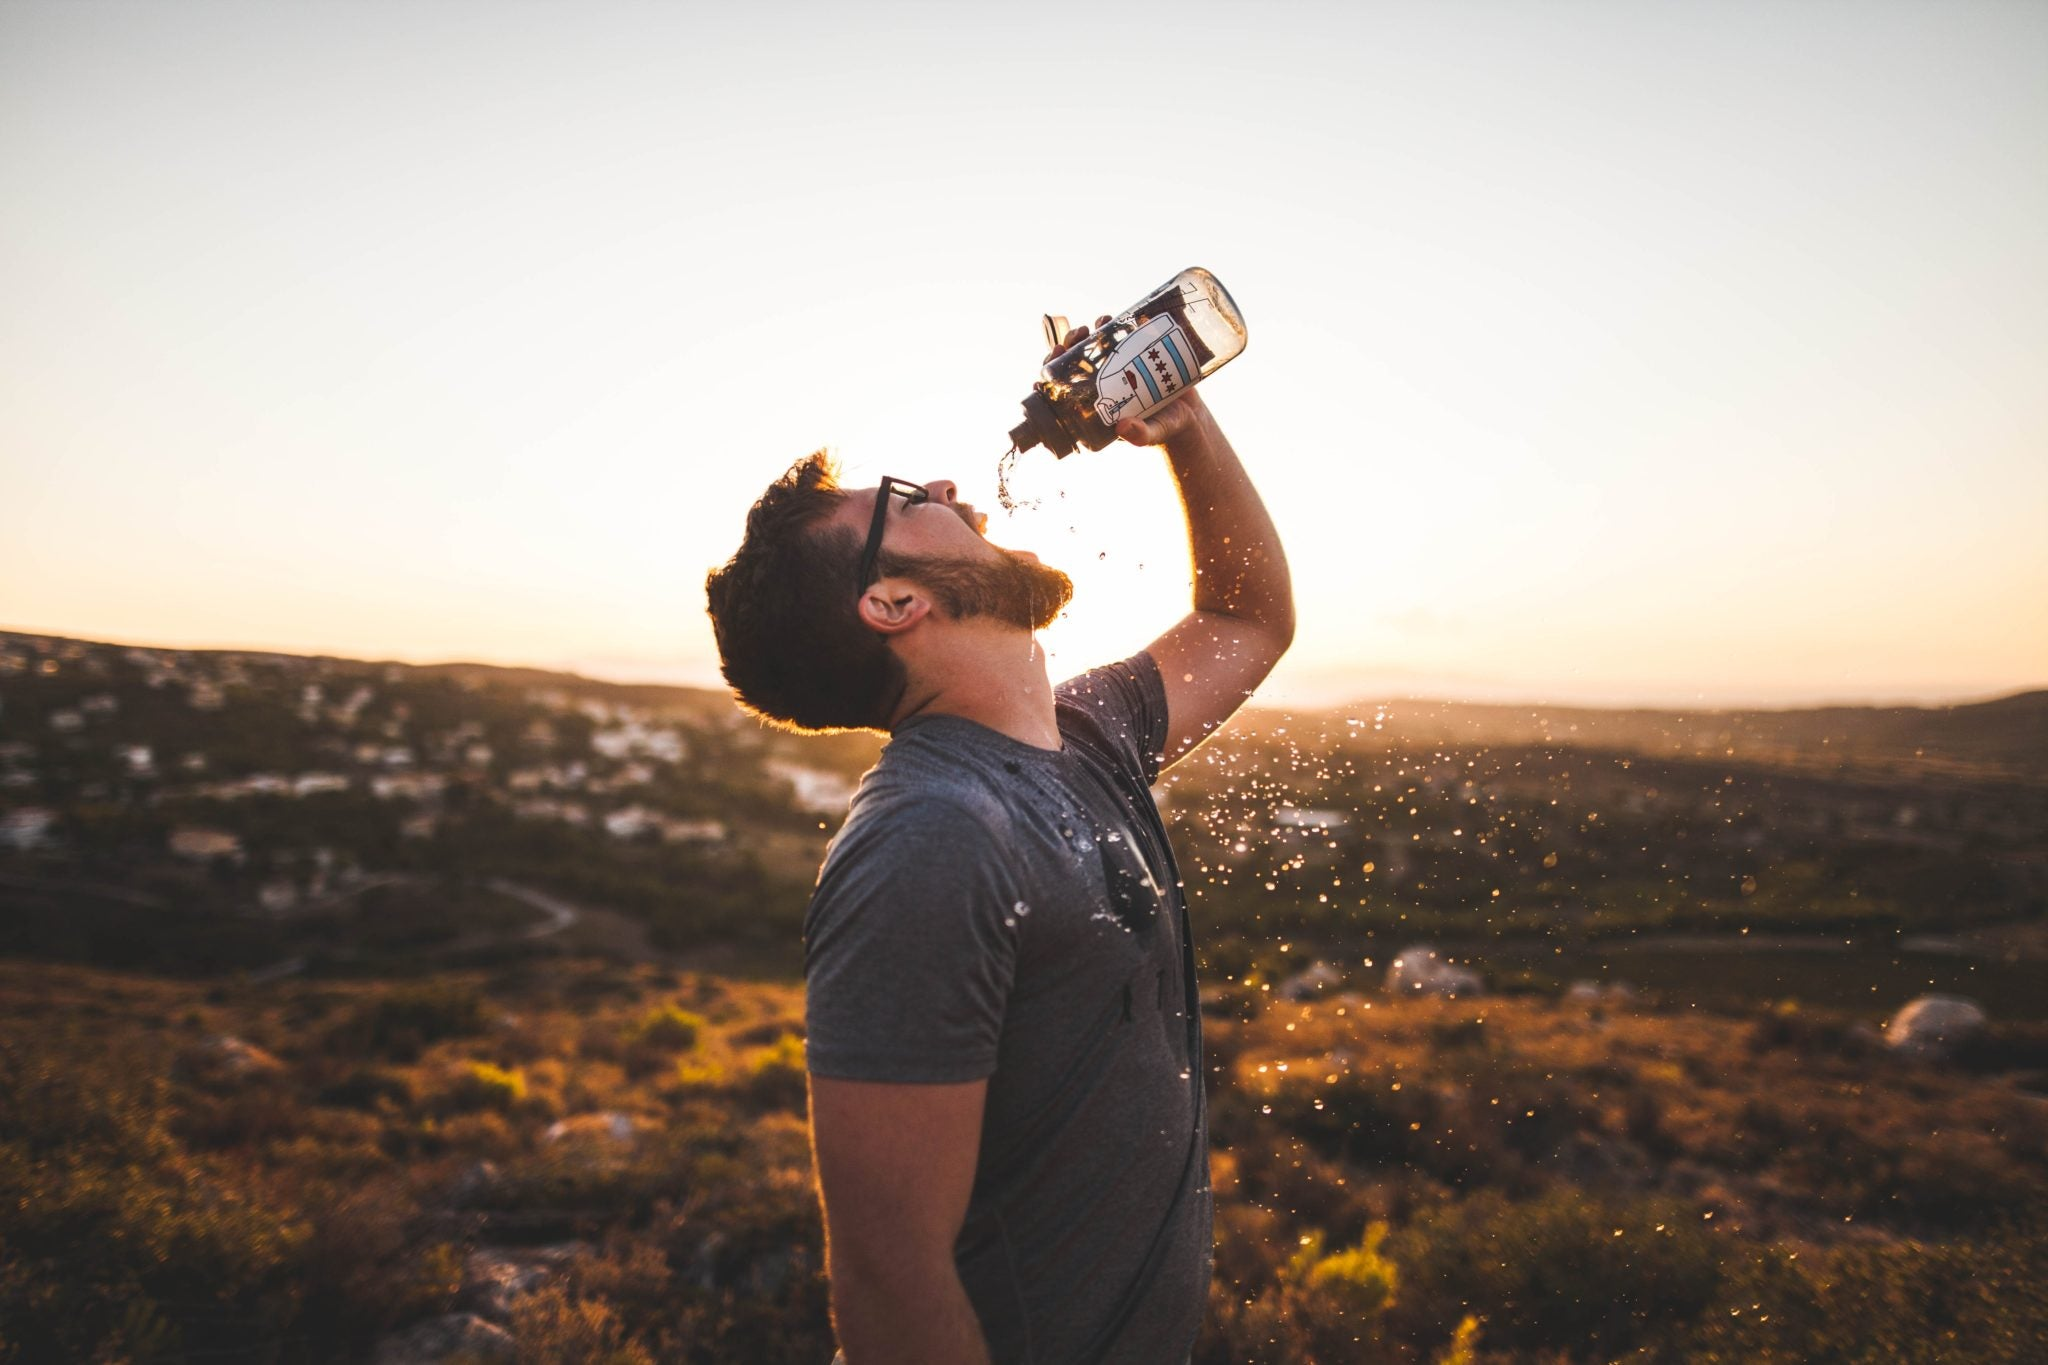 keeping hydrated with water